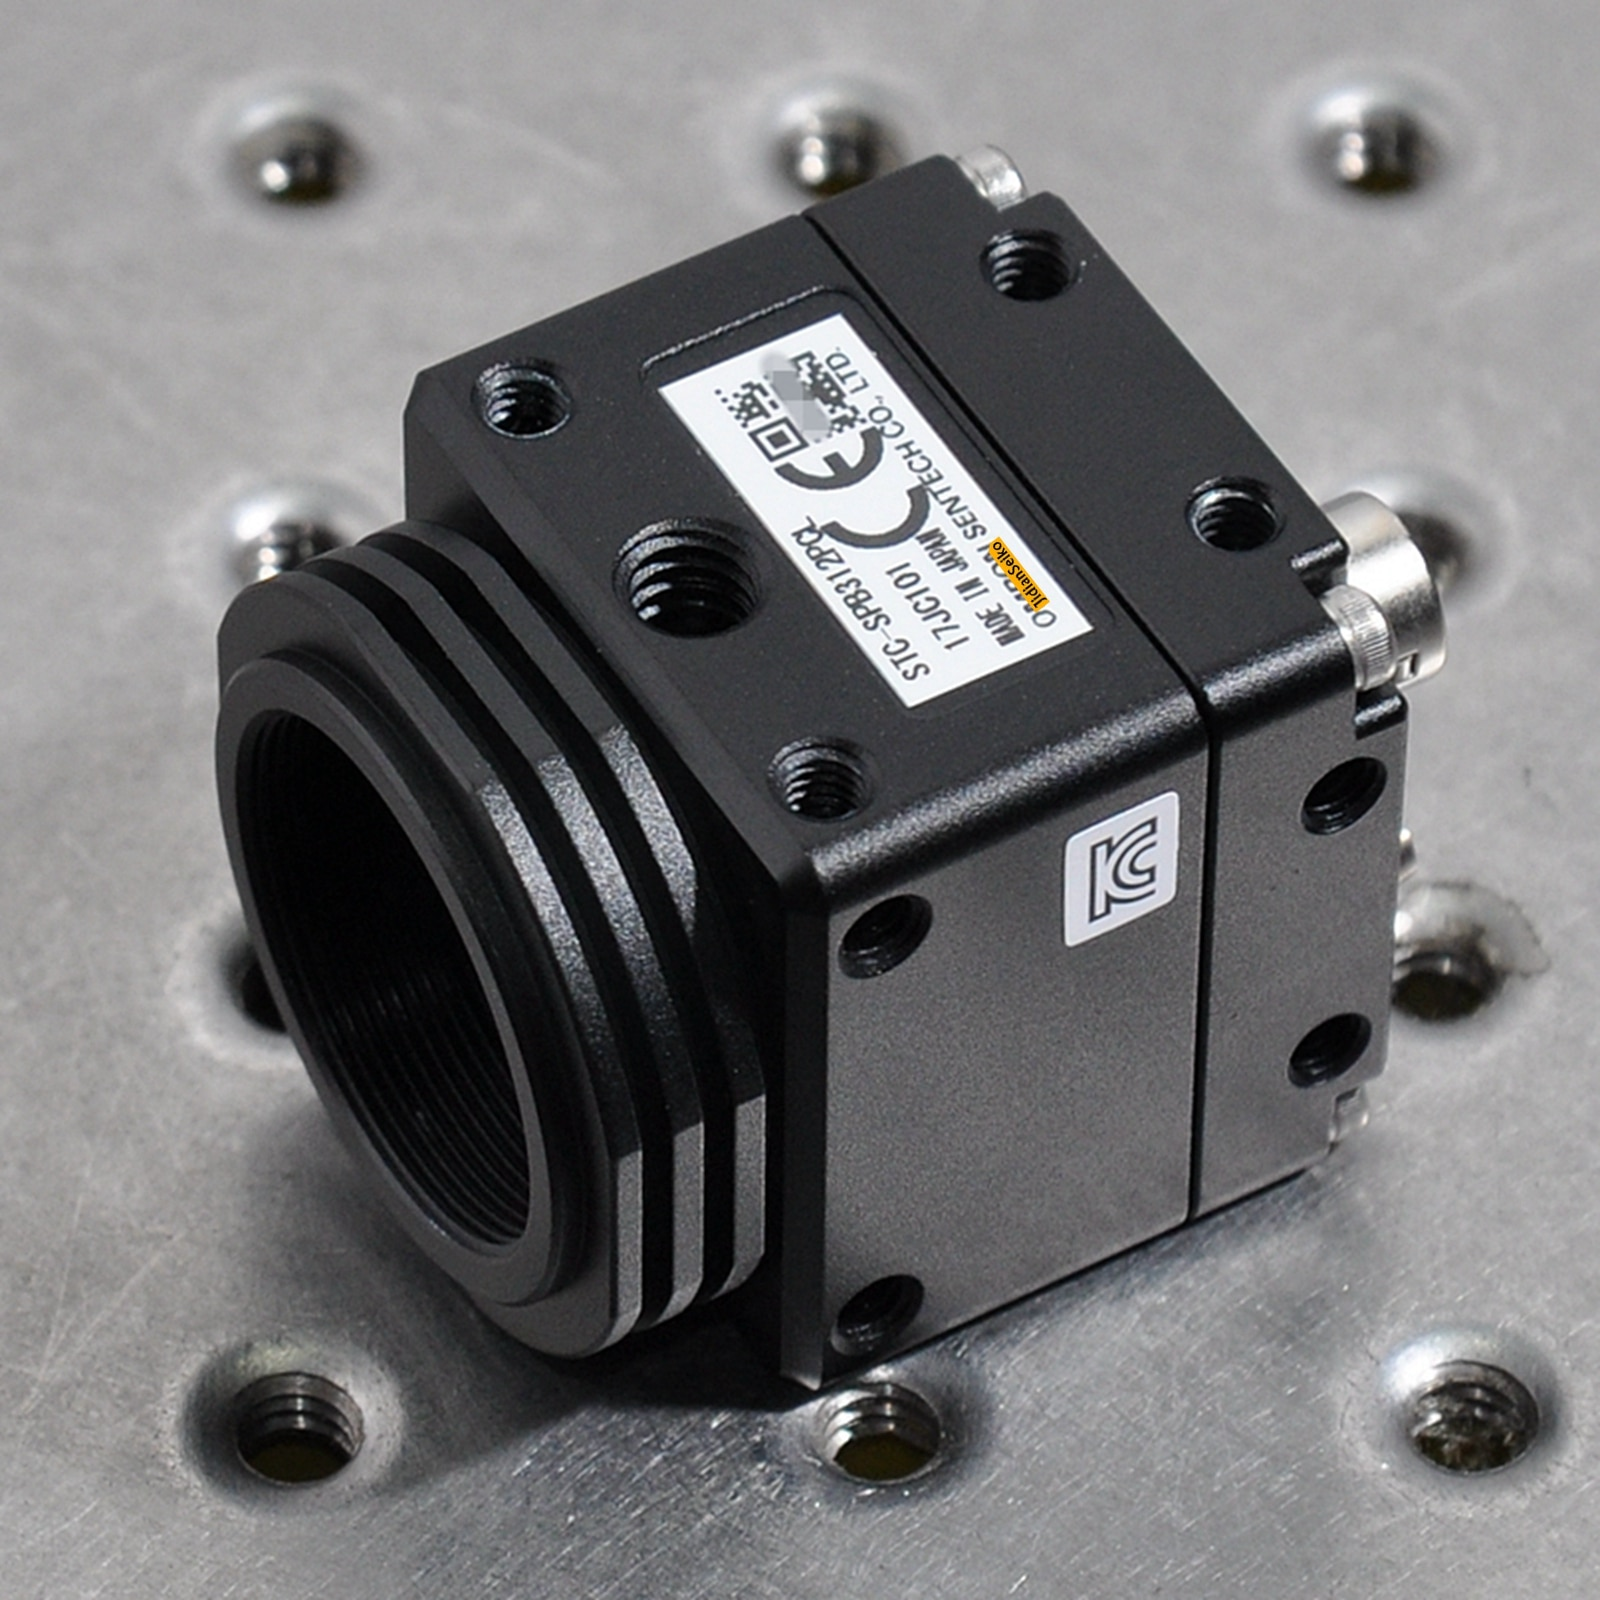 STC-SPB312PCL 3 million pixel industrial vision black and white CCD camera